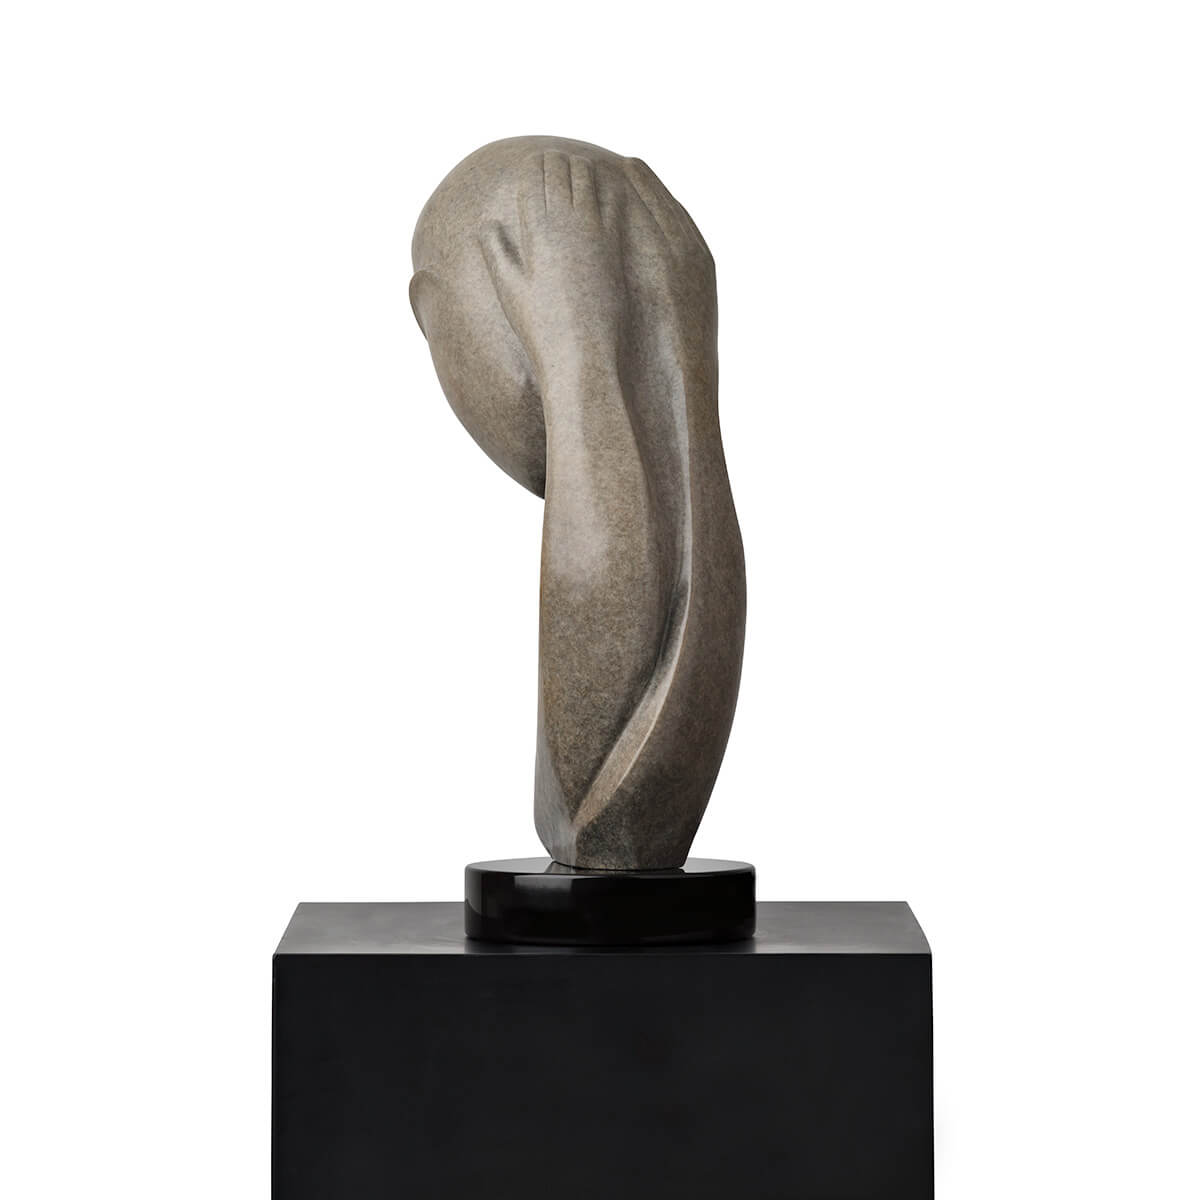 Robert-Helle-Sculpture-Gallery-Knowing-5-1200x1200